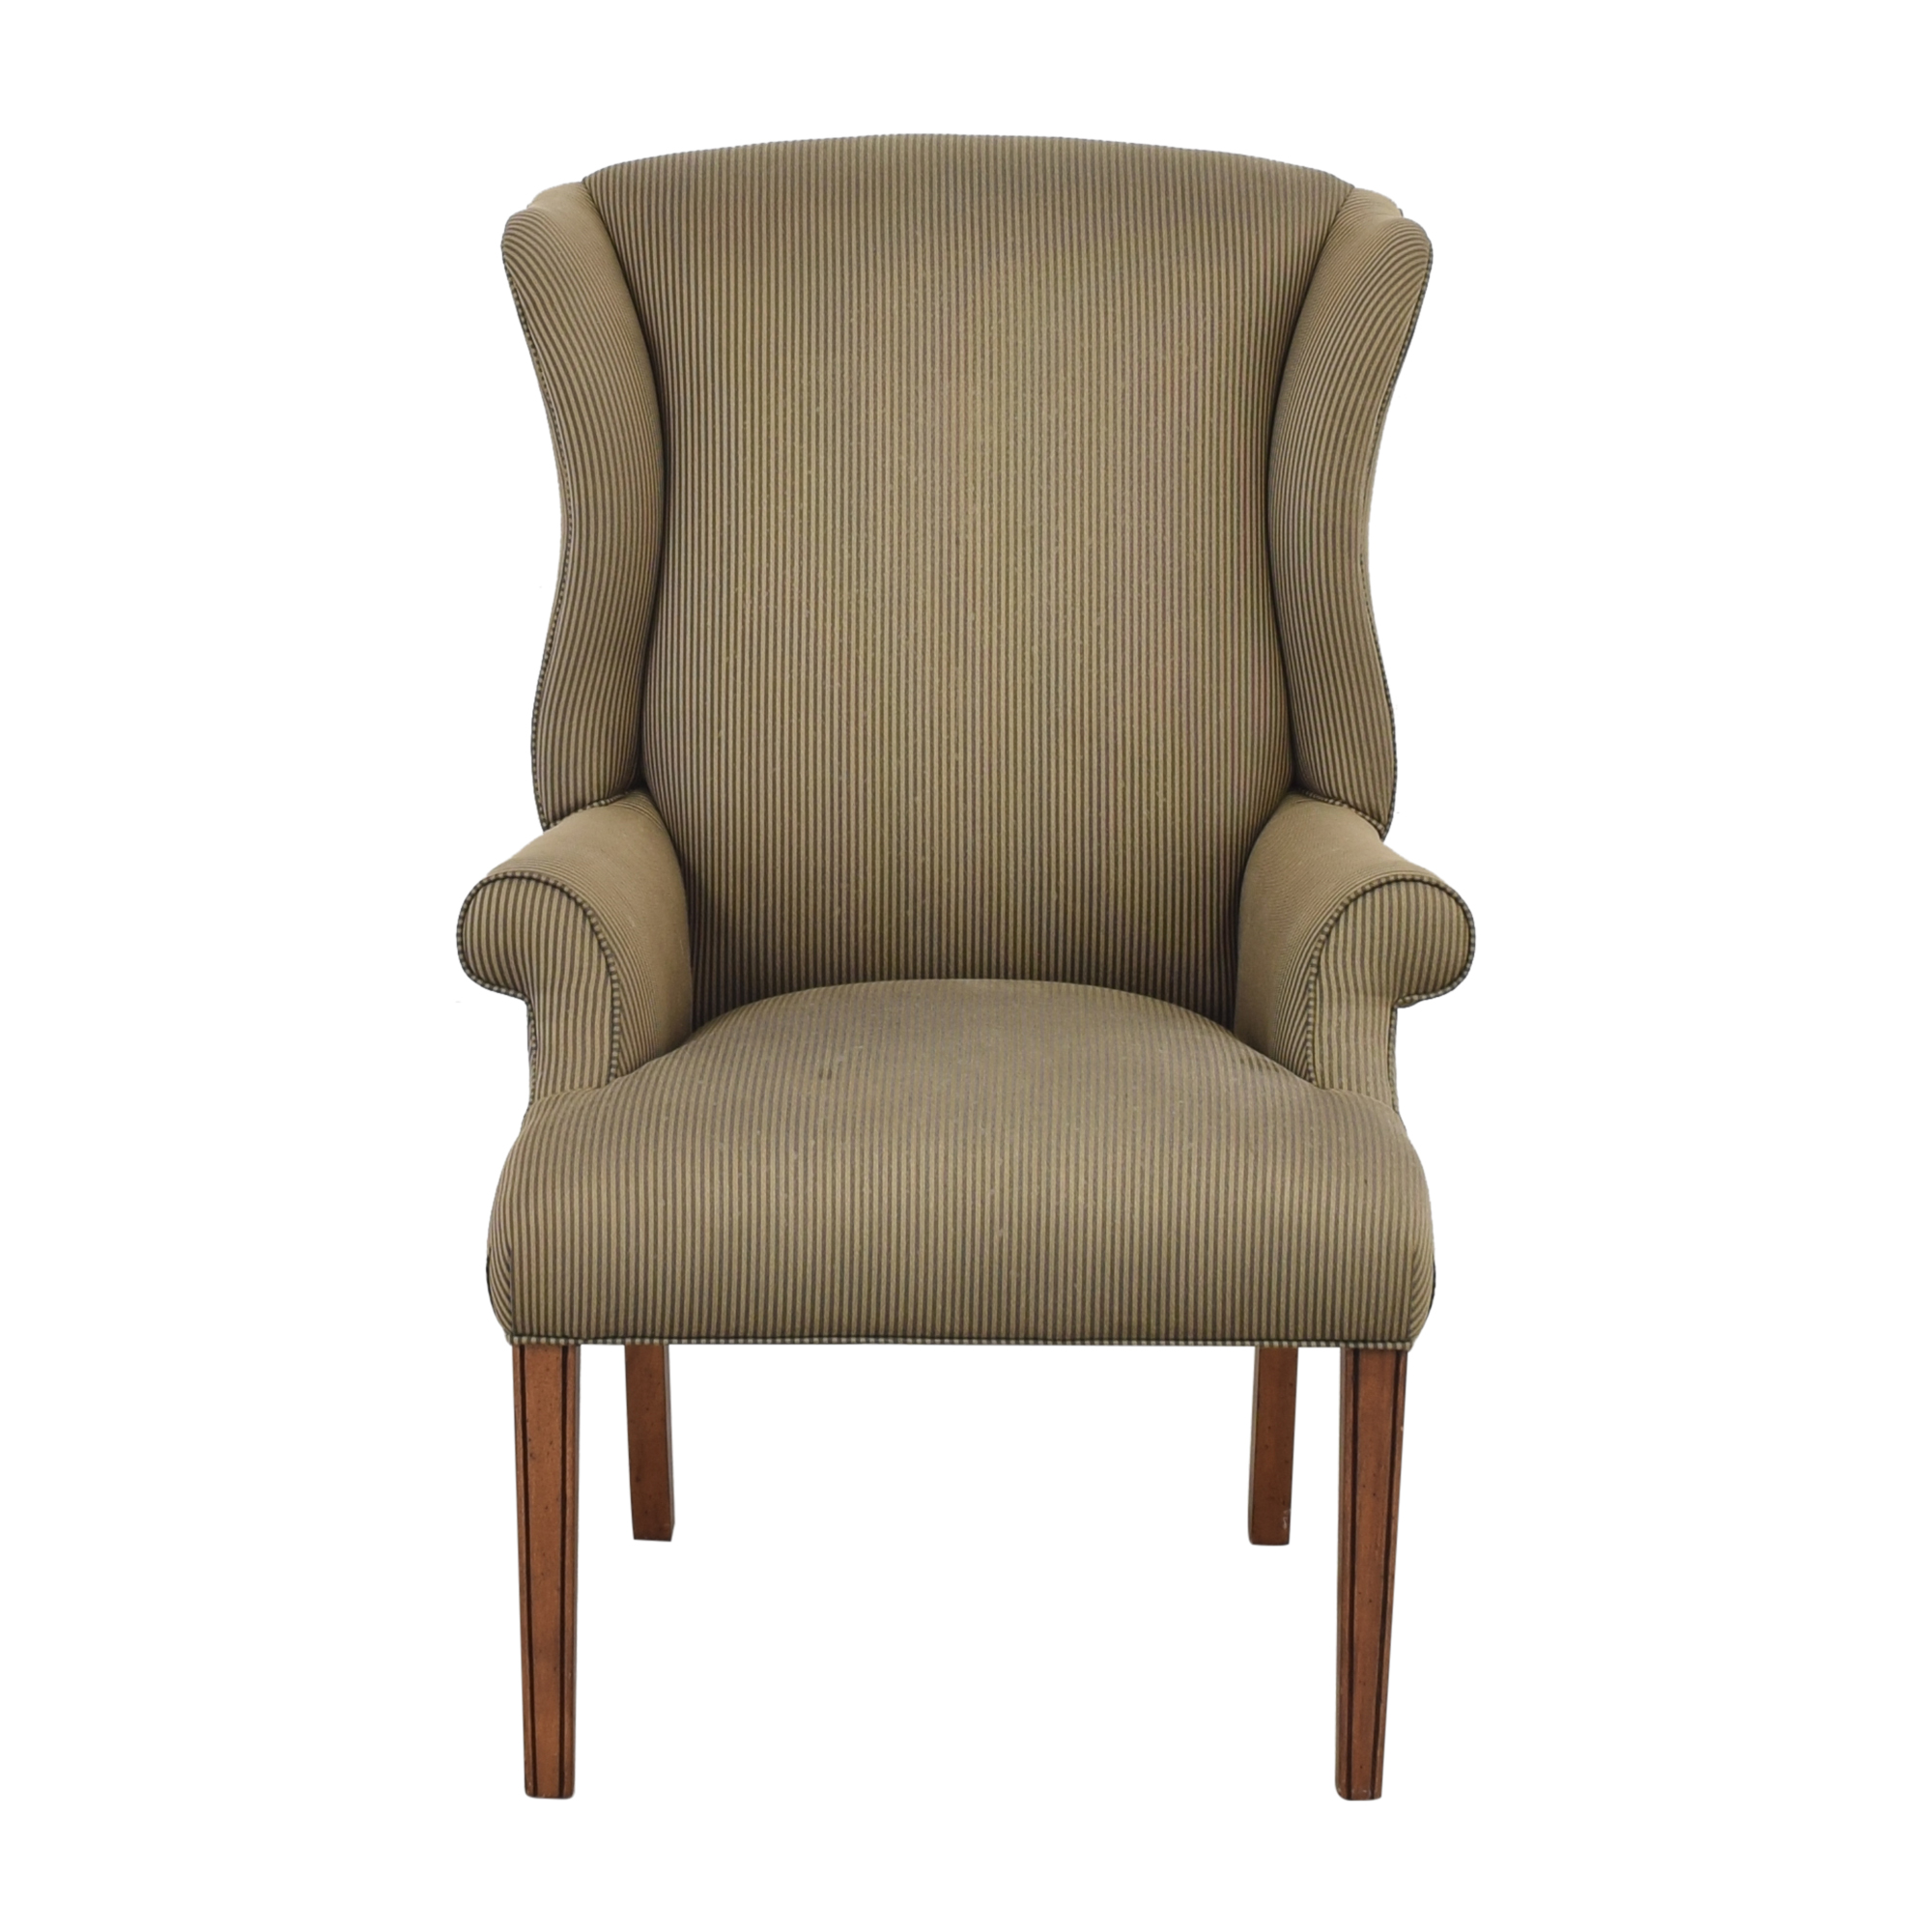 Ethan Allen Skylar Wing Chair sale